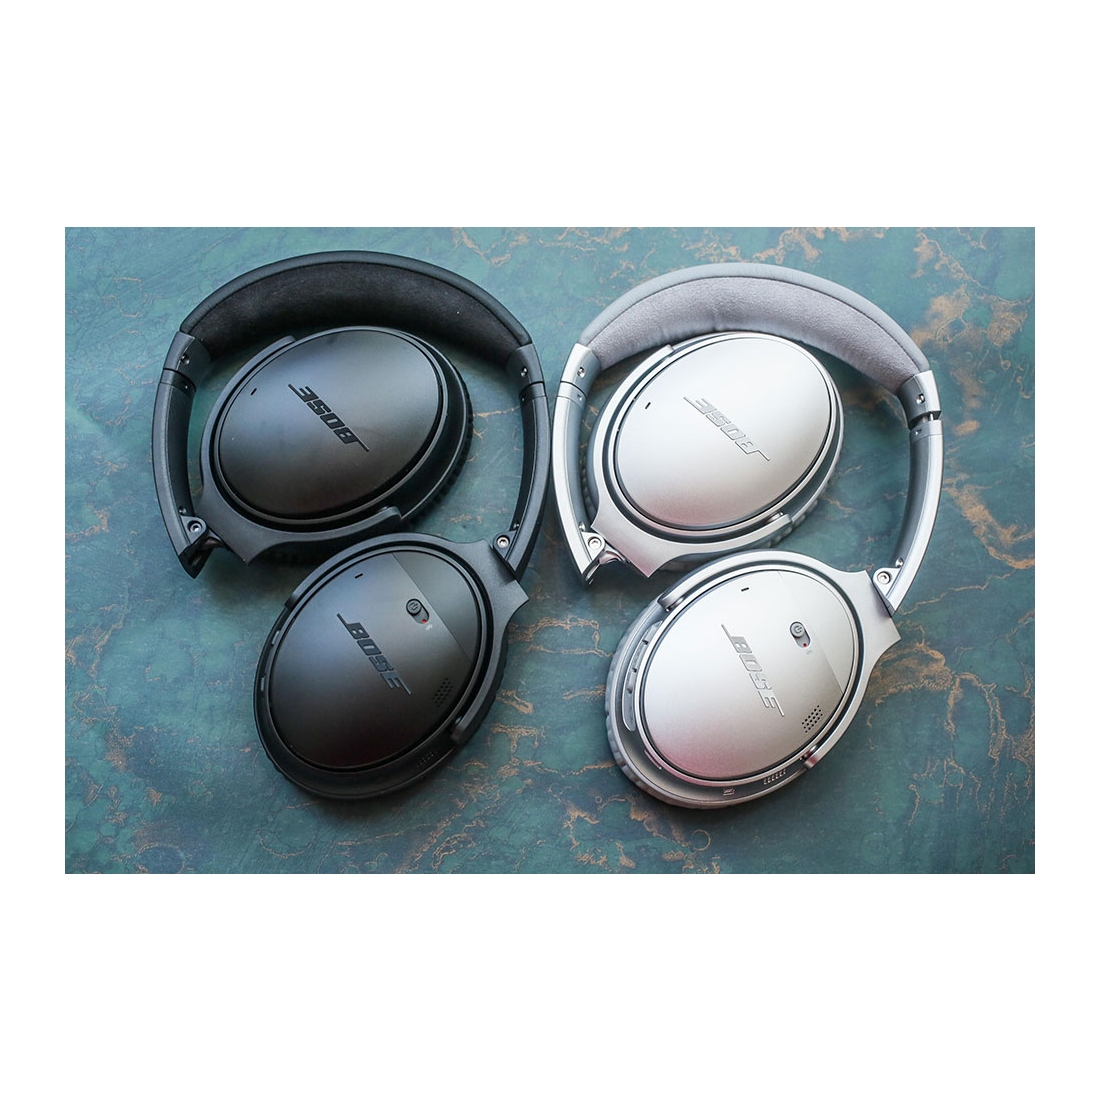 Bose QuietComfort 35 II Impressions Review